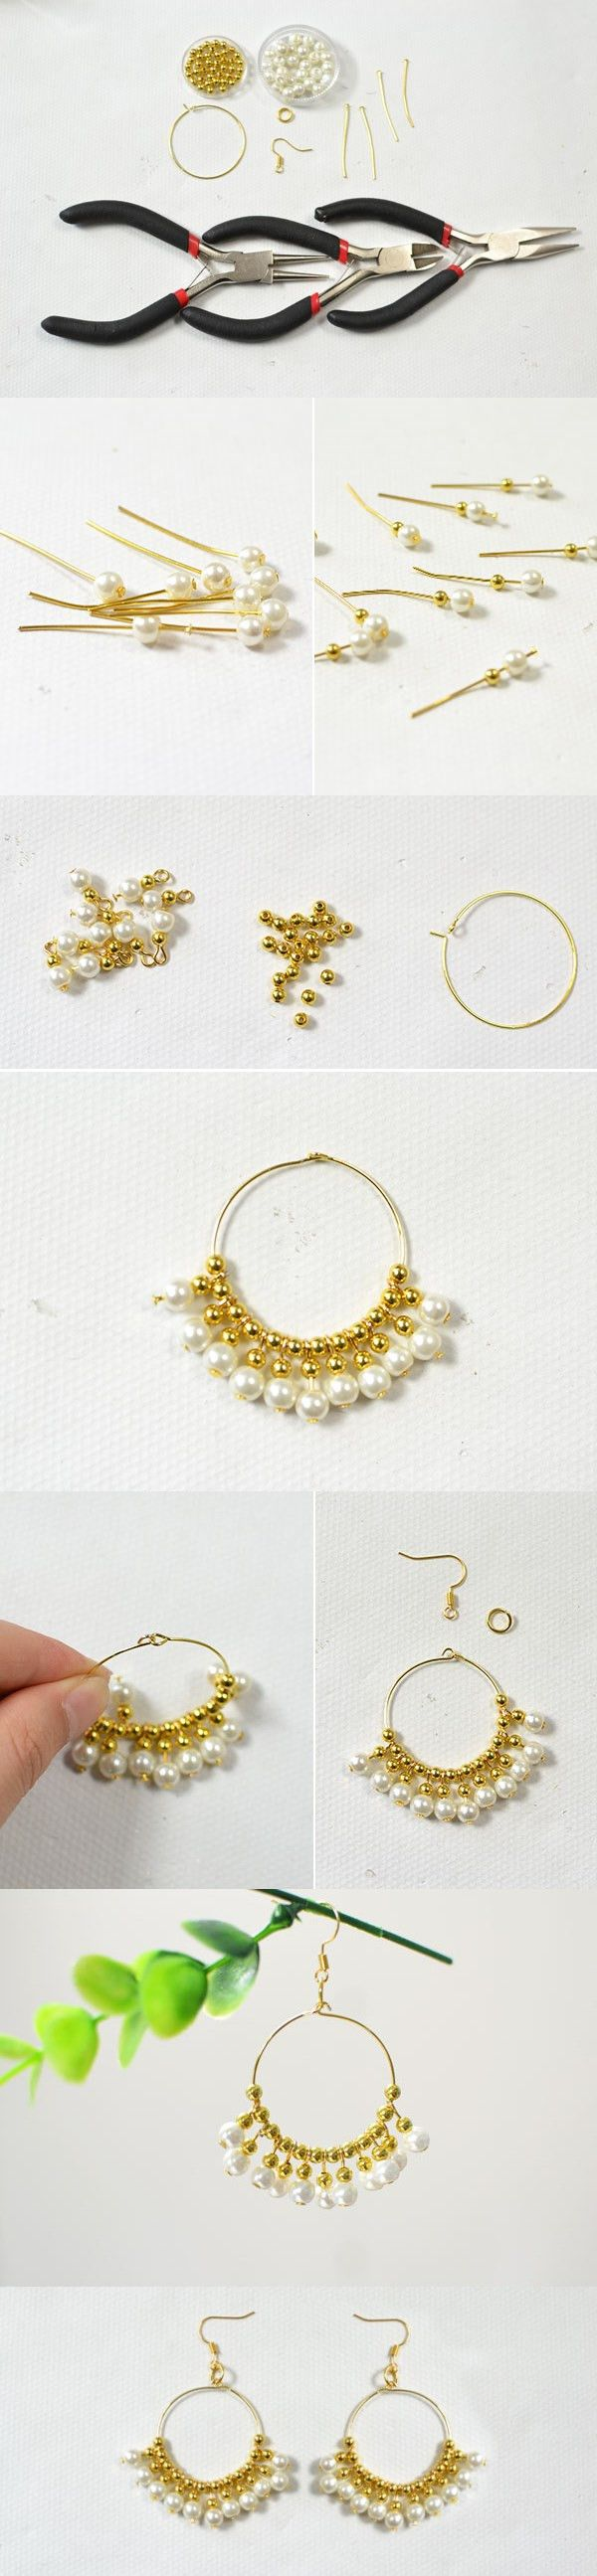 Tutorial for gold beaded hoop earrings from LC.Pandahall.com ...